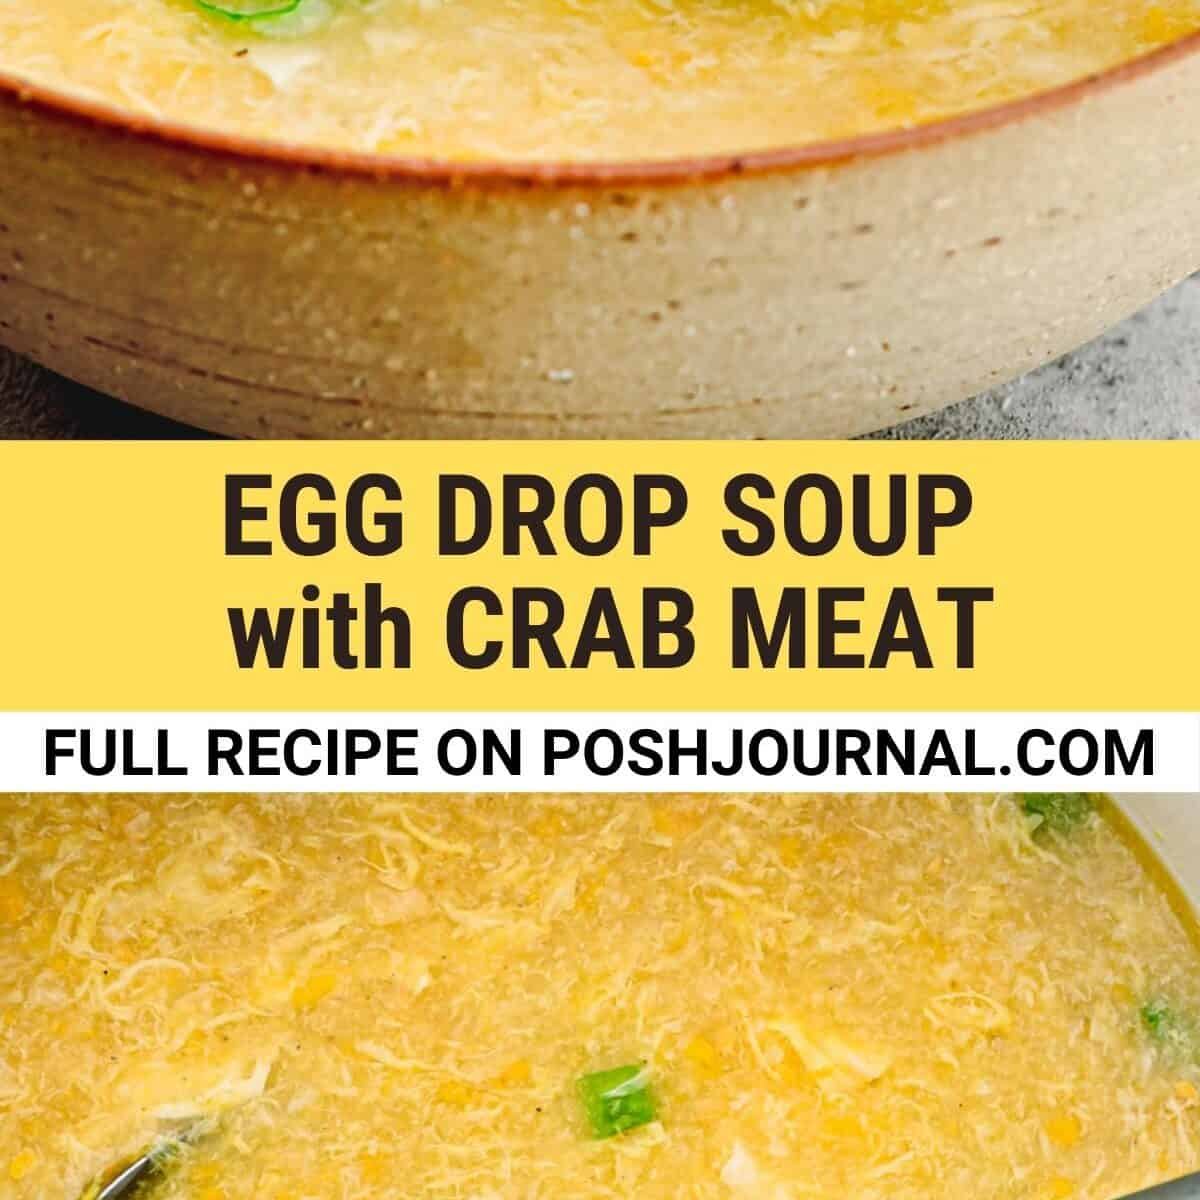 egg drop soup with crab meat.